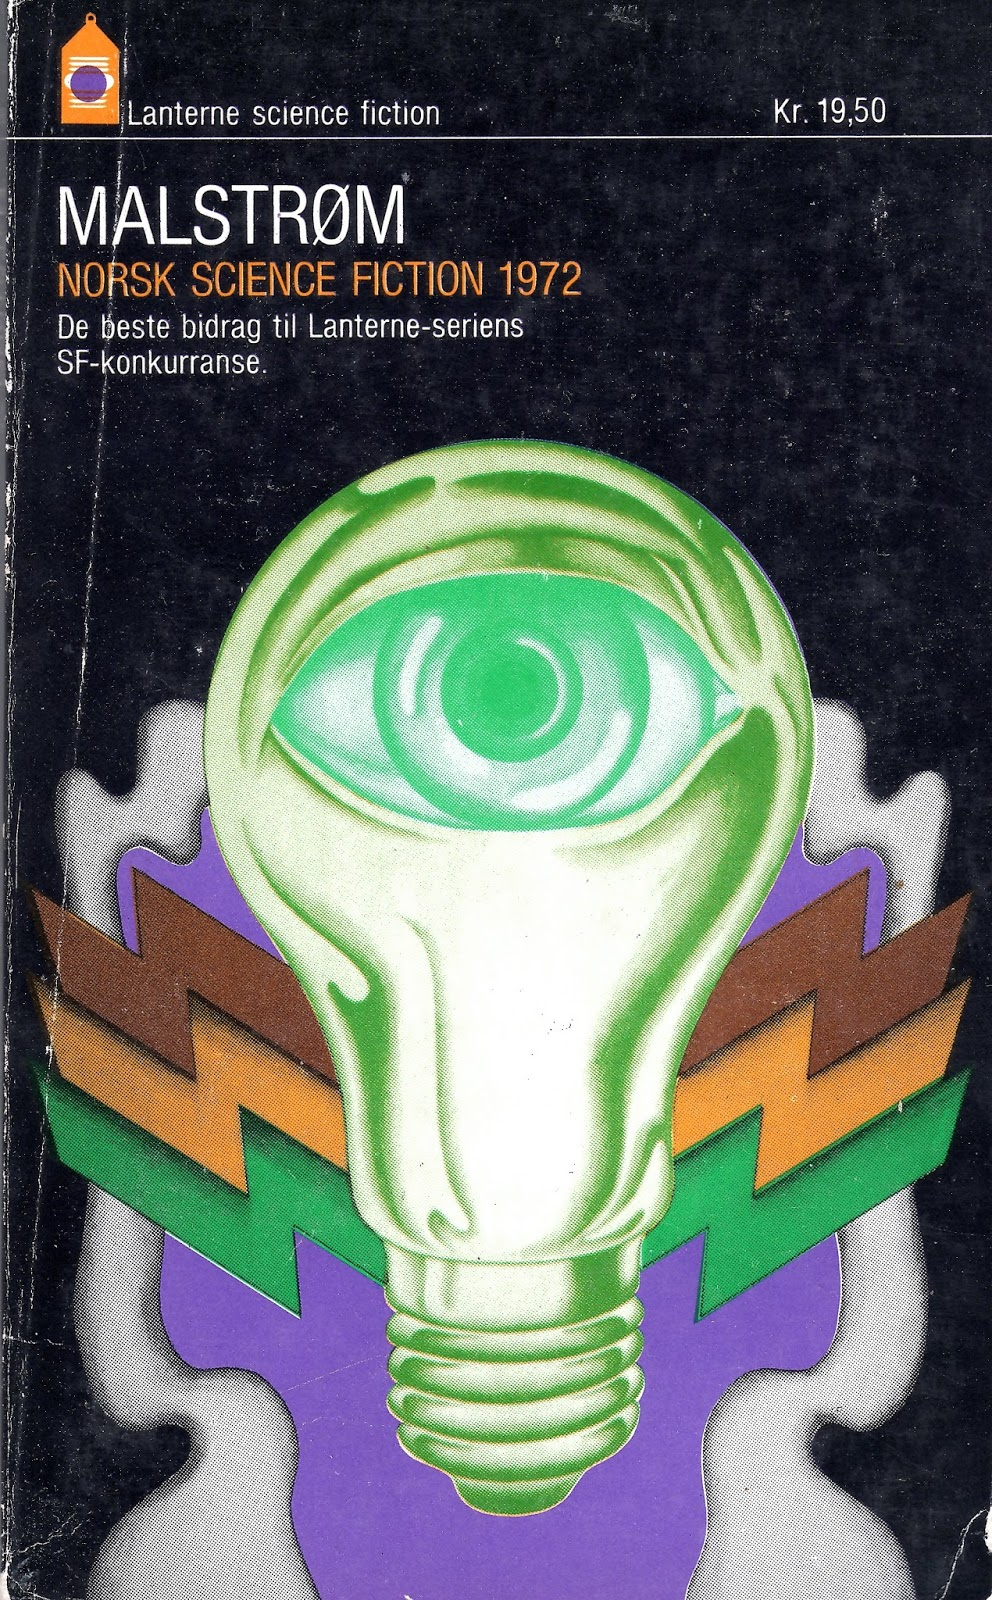 norwegian vintage paperback scifi book covers